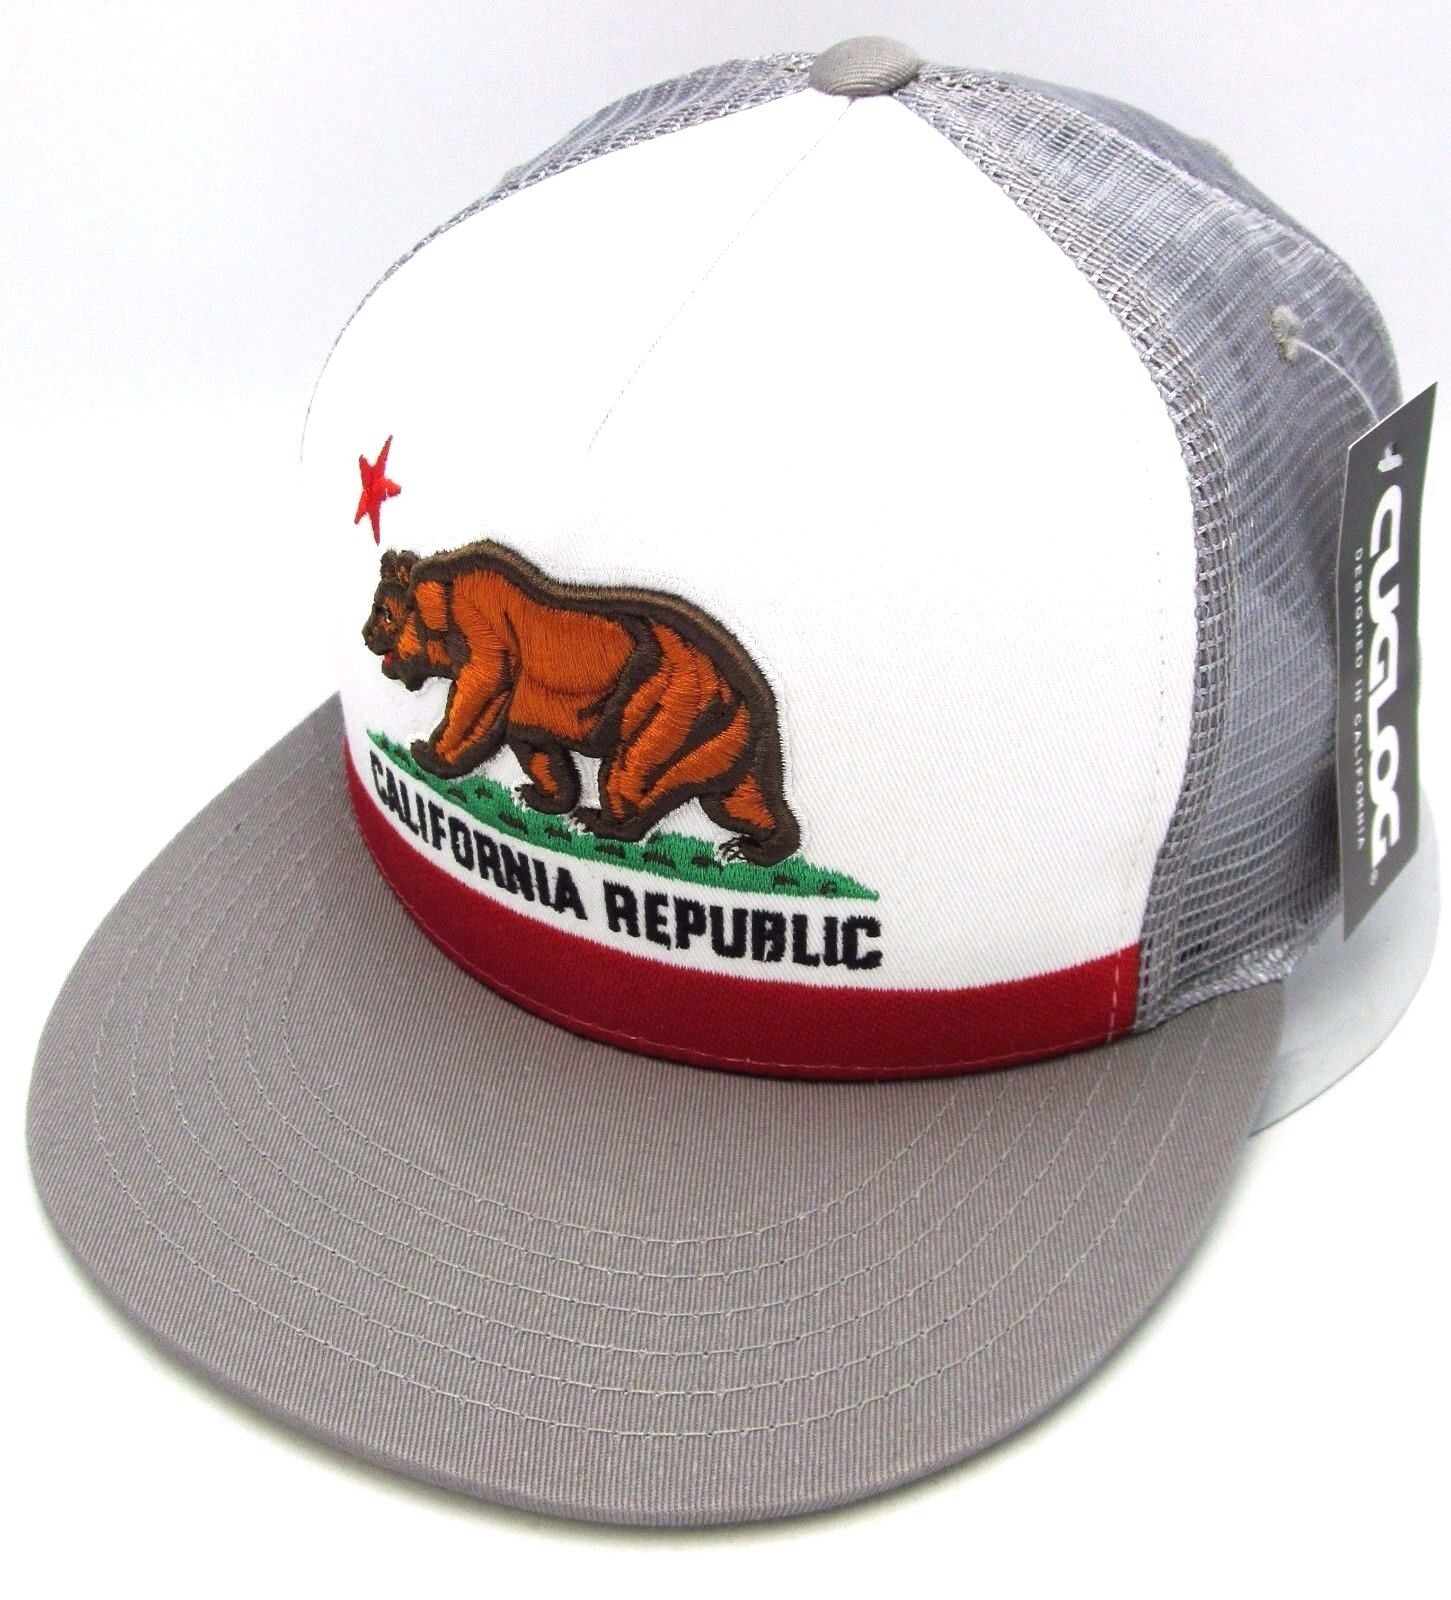 01a8e187793 California Republic Snapback Cap Cali Bear Trucker Mesh Flat Bill Hat OSFM